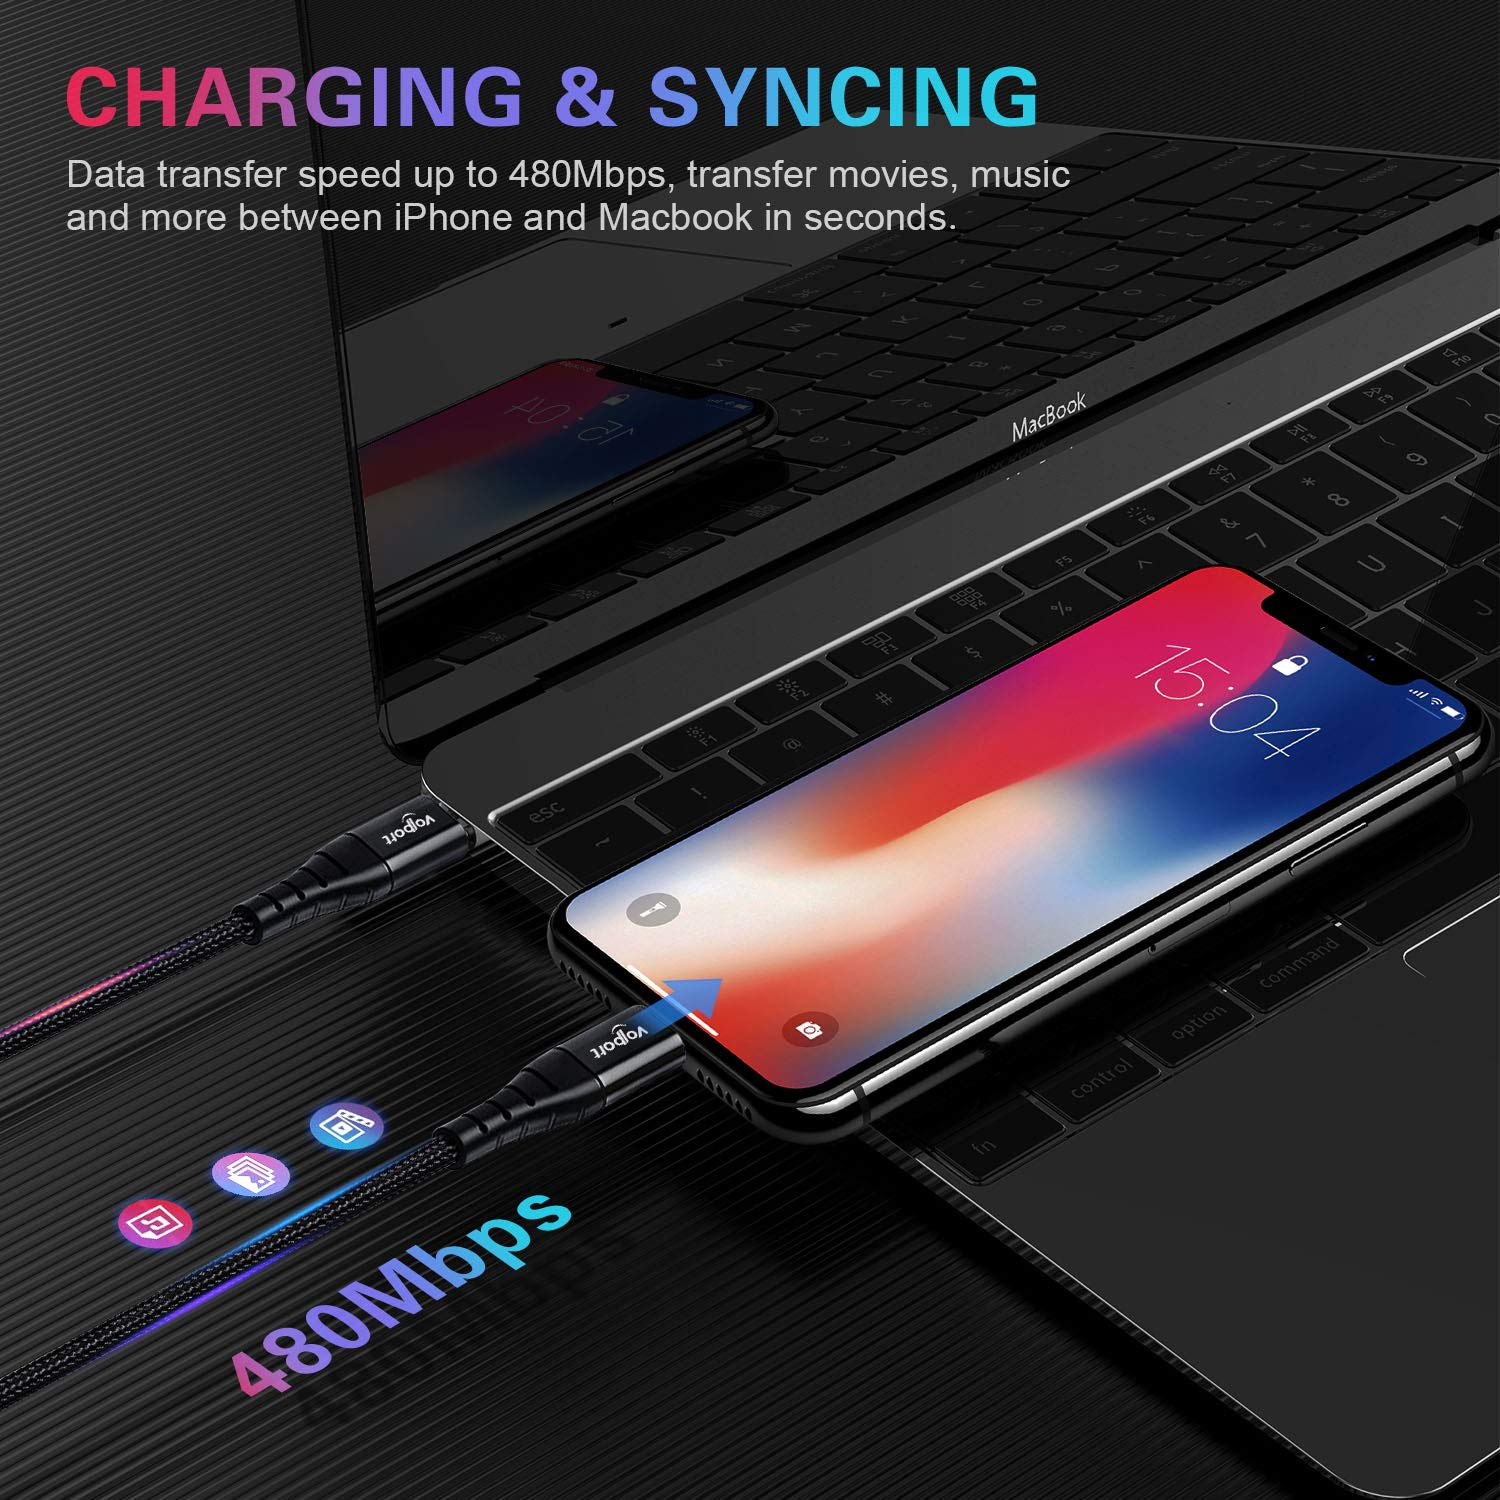 USB C to Lightning Cable Fast Charging VOLPORT Apple MFi Certified PD Charge Cord 3ft 1m for iPhone 11 Pro Max X XR XS Max 8 Plus iPad Pro Supports Power Delivery Black